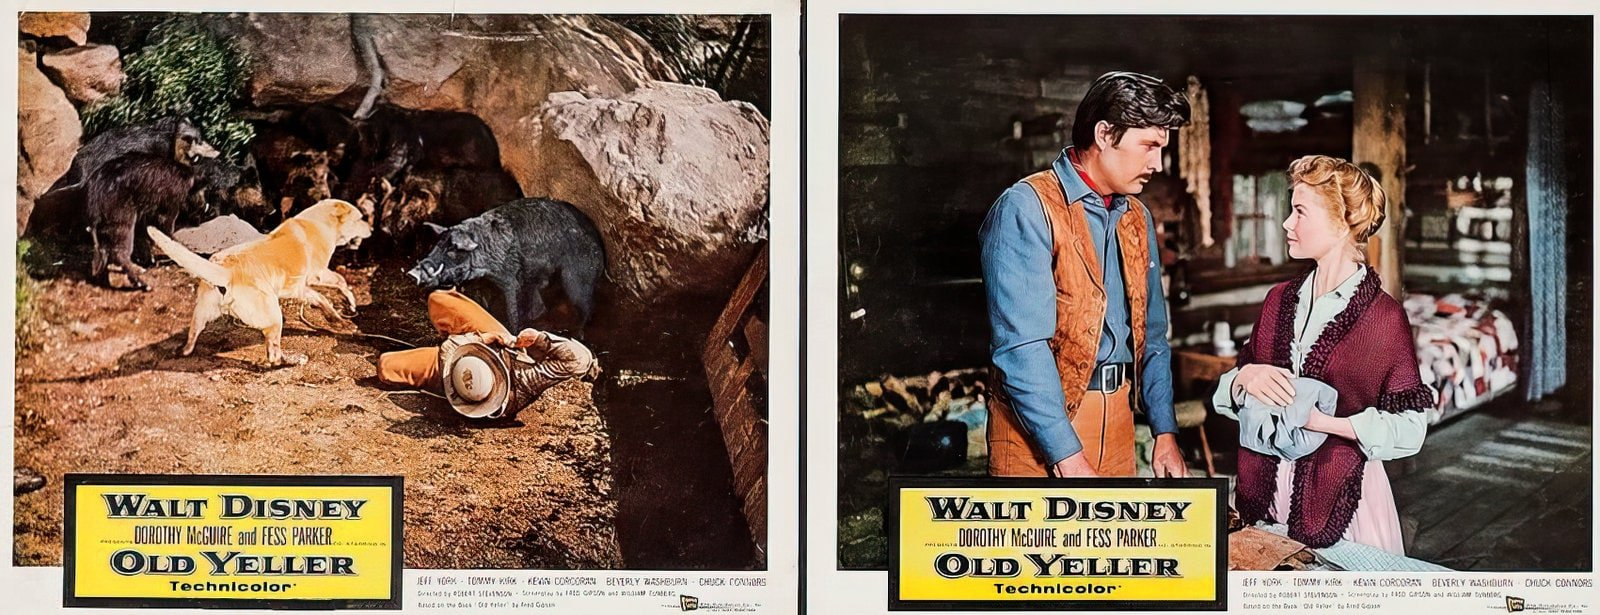 Vintage Old Yeller movie scenes from the 1950s (4)